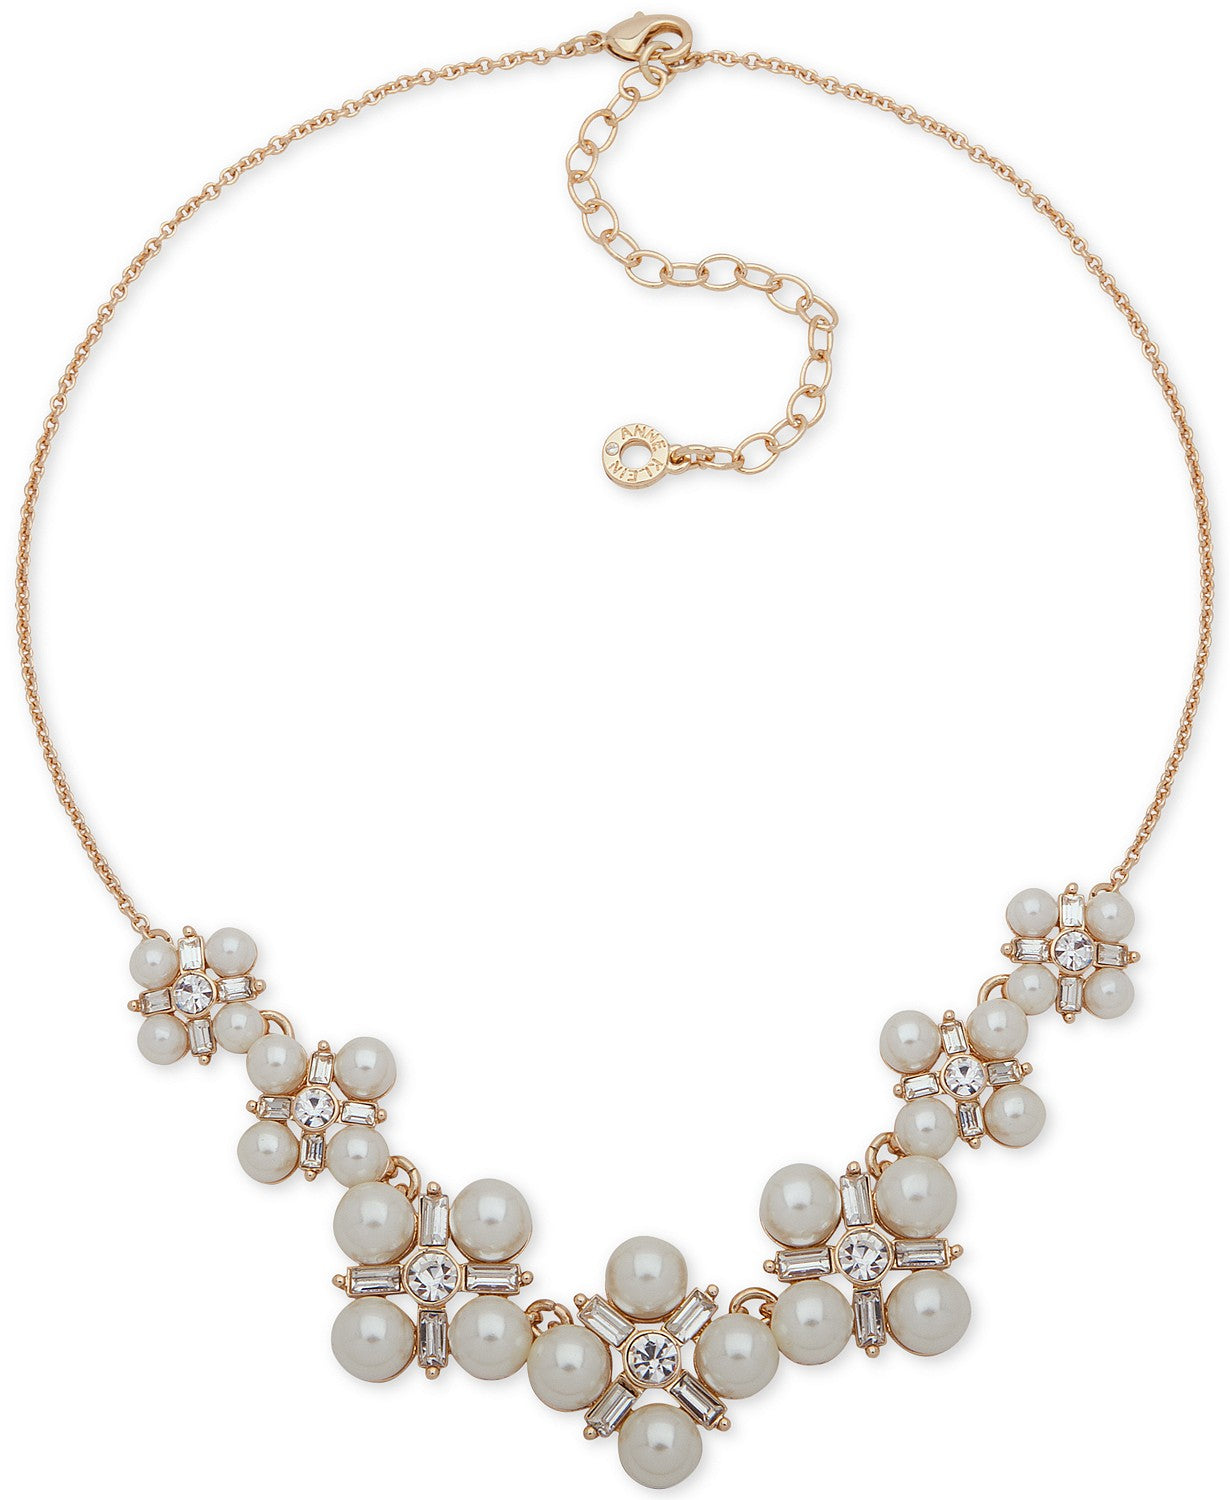 Anne Klein Gold-Tone Crystal & Imitation Pearl Cluster Collar Necklace